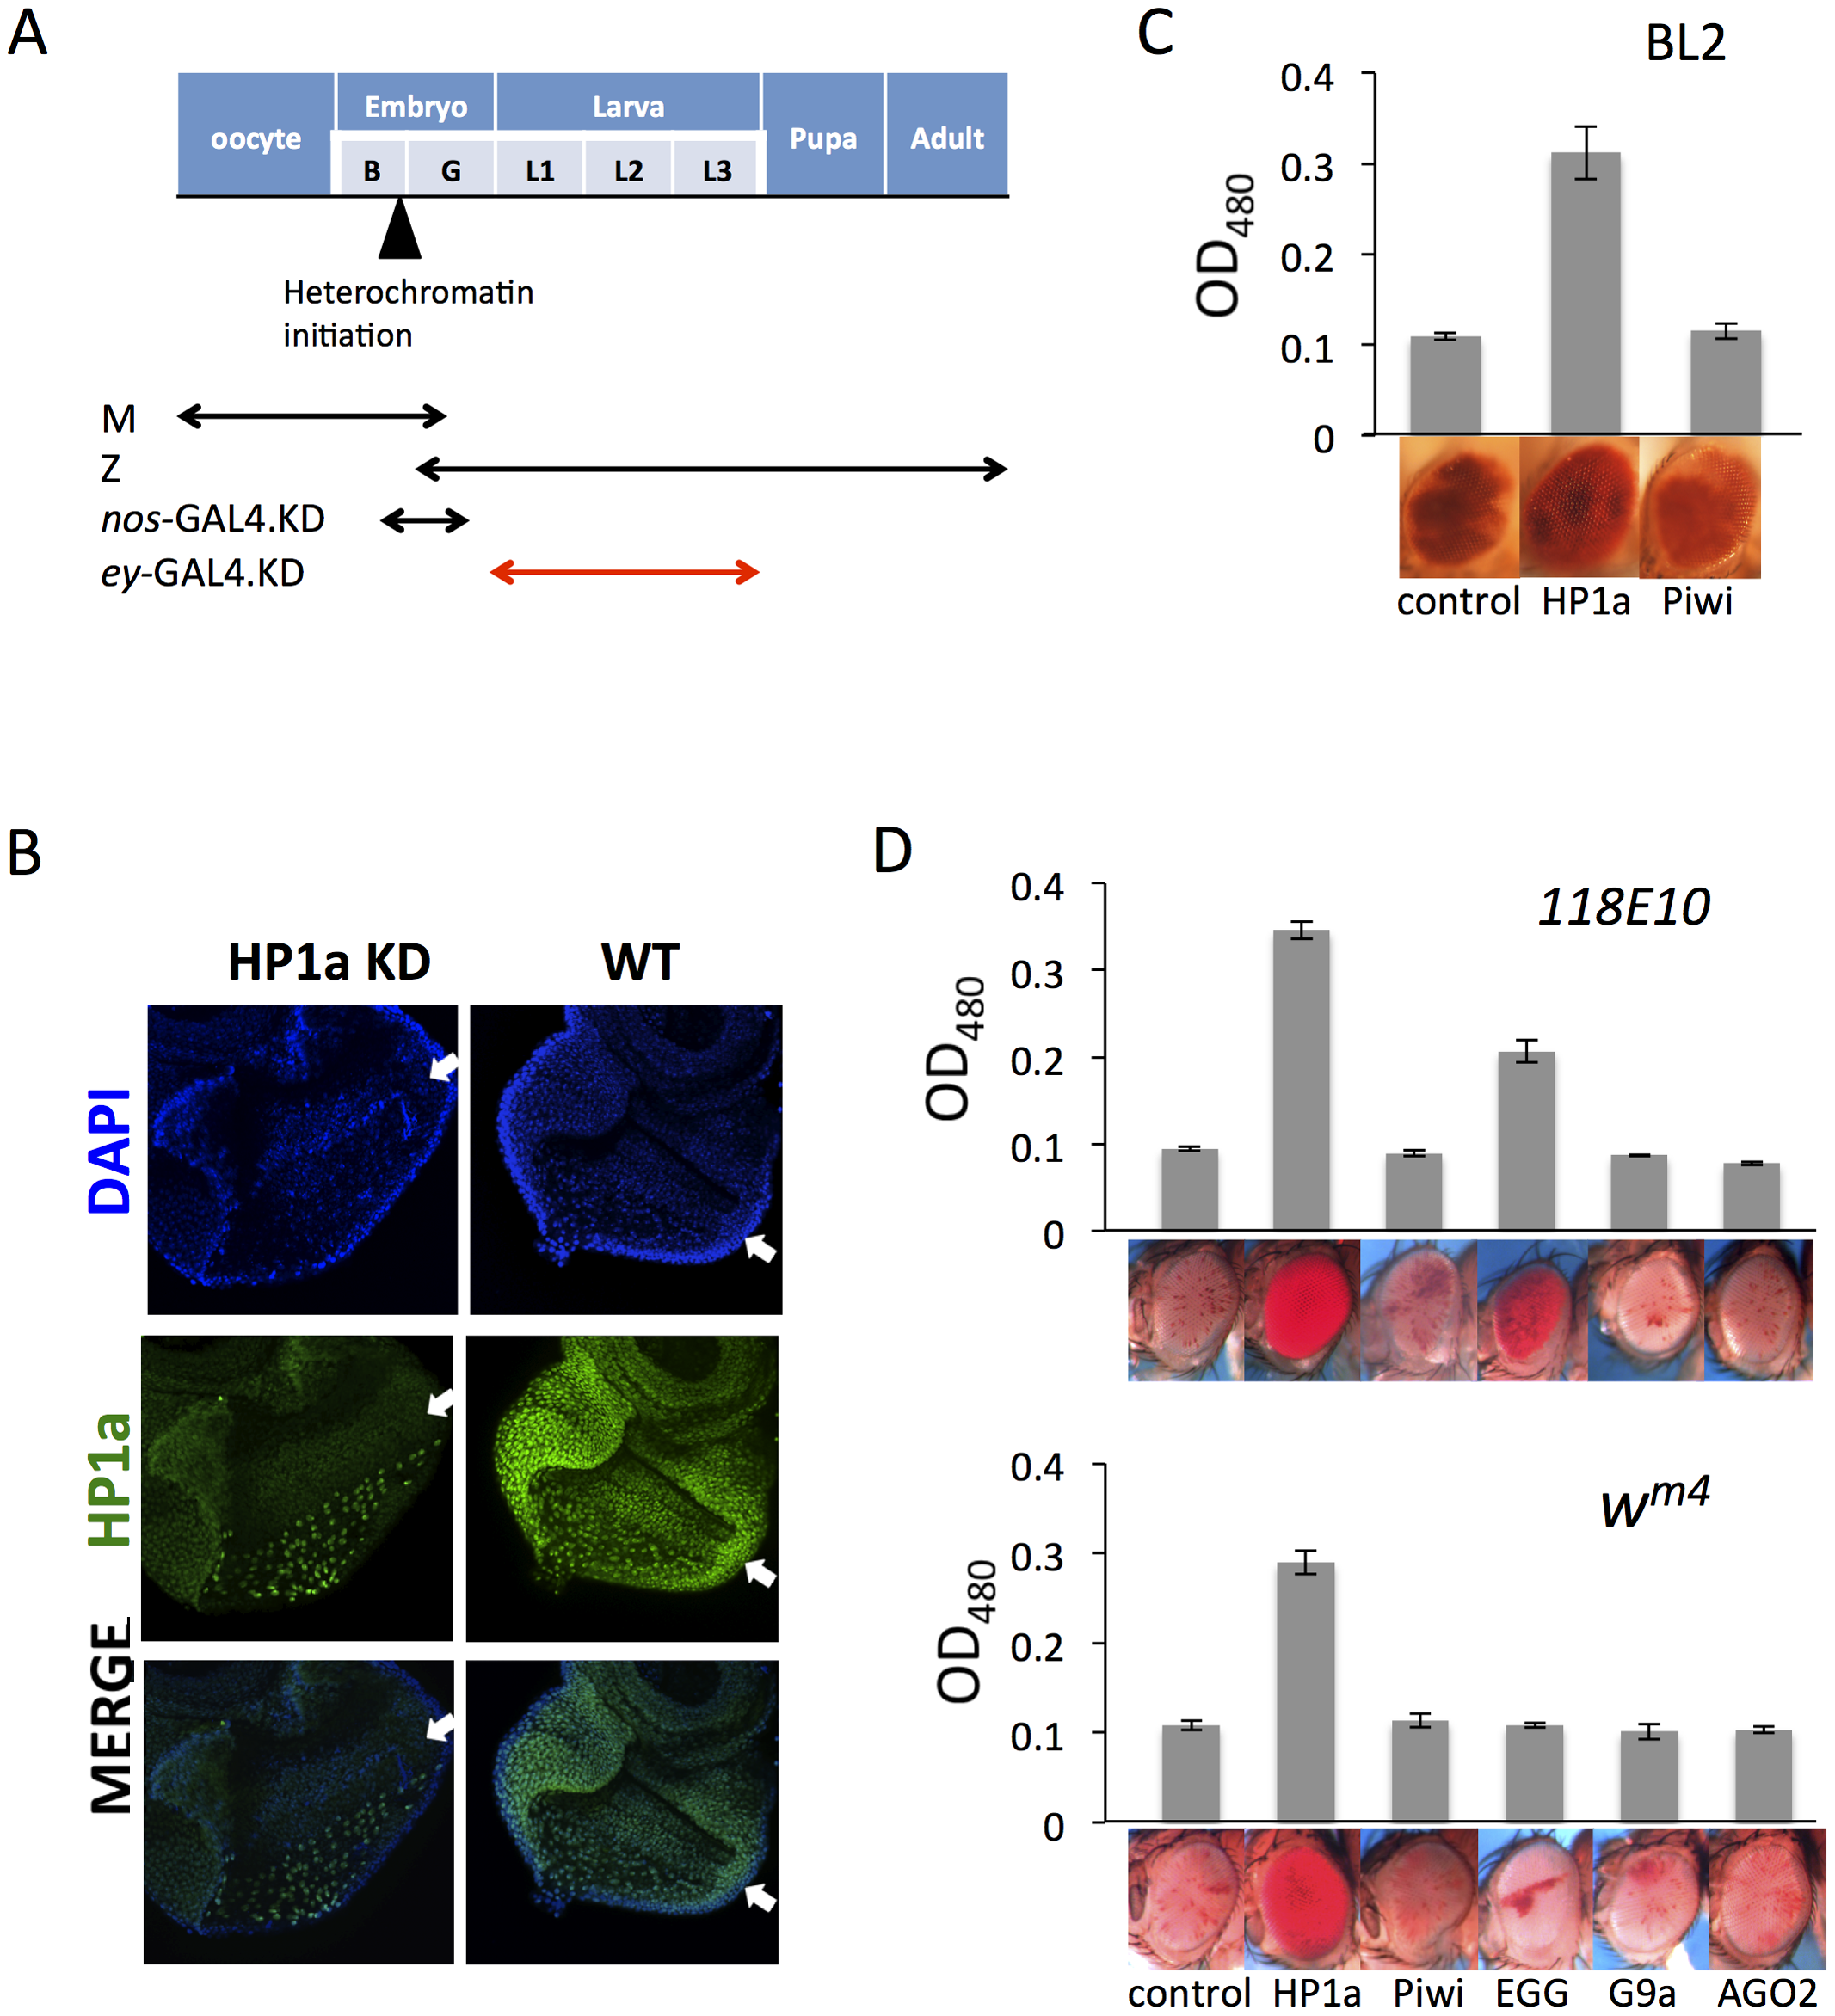 Eye lineage-specific knockdown (KD) of HP1a or EGG, but not of RNAi components Piwi or AGO2, suppresses variegation of a <i>white</i> PEV reporter.